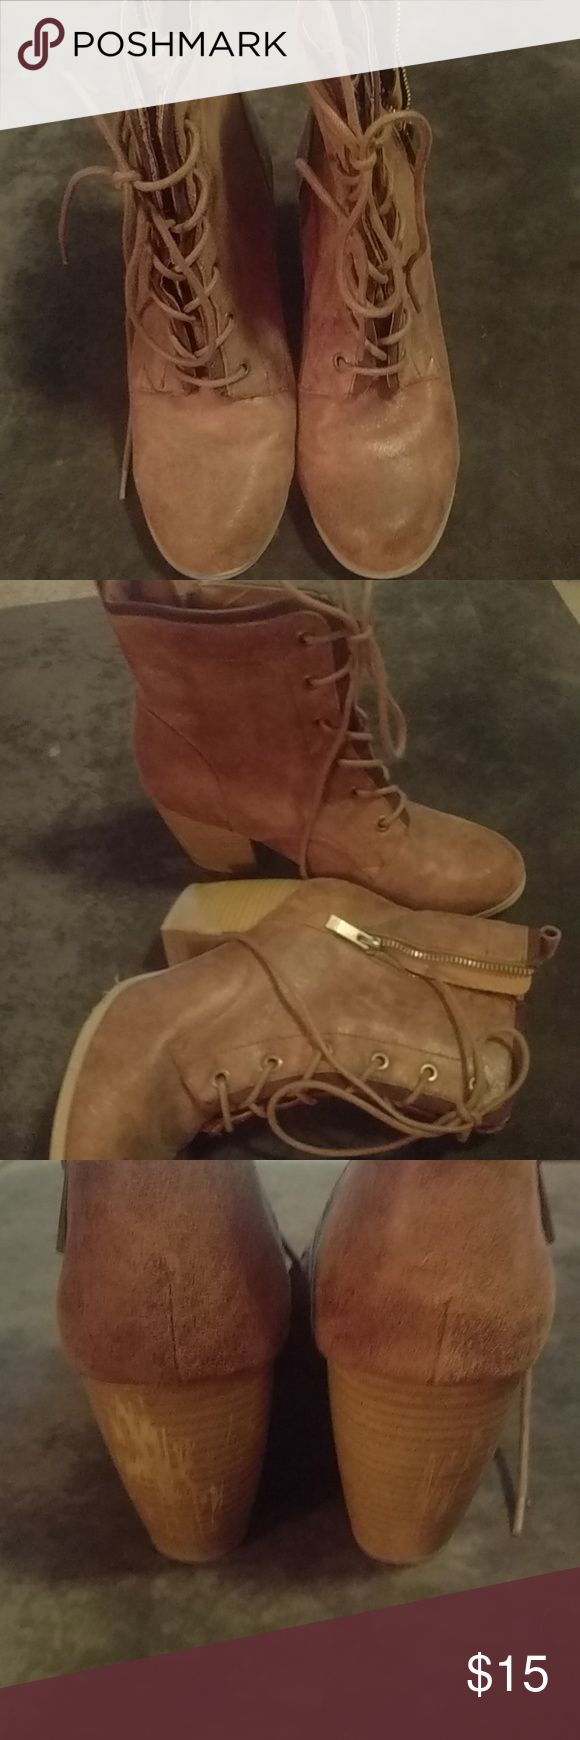 Maurices boots Size 9, work maybe twice, to high for us, excellent condition except for scratches on back of heel, took a picture to show that 😁 Maurices Shoes Ankle Boots & Booties